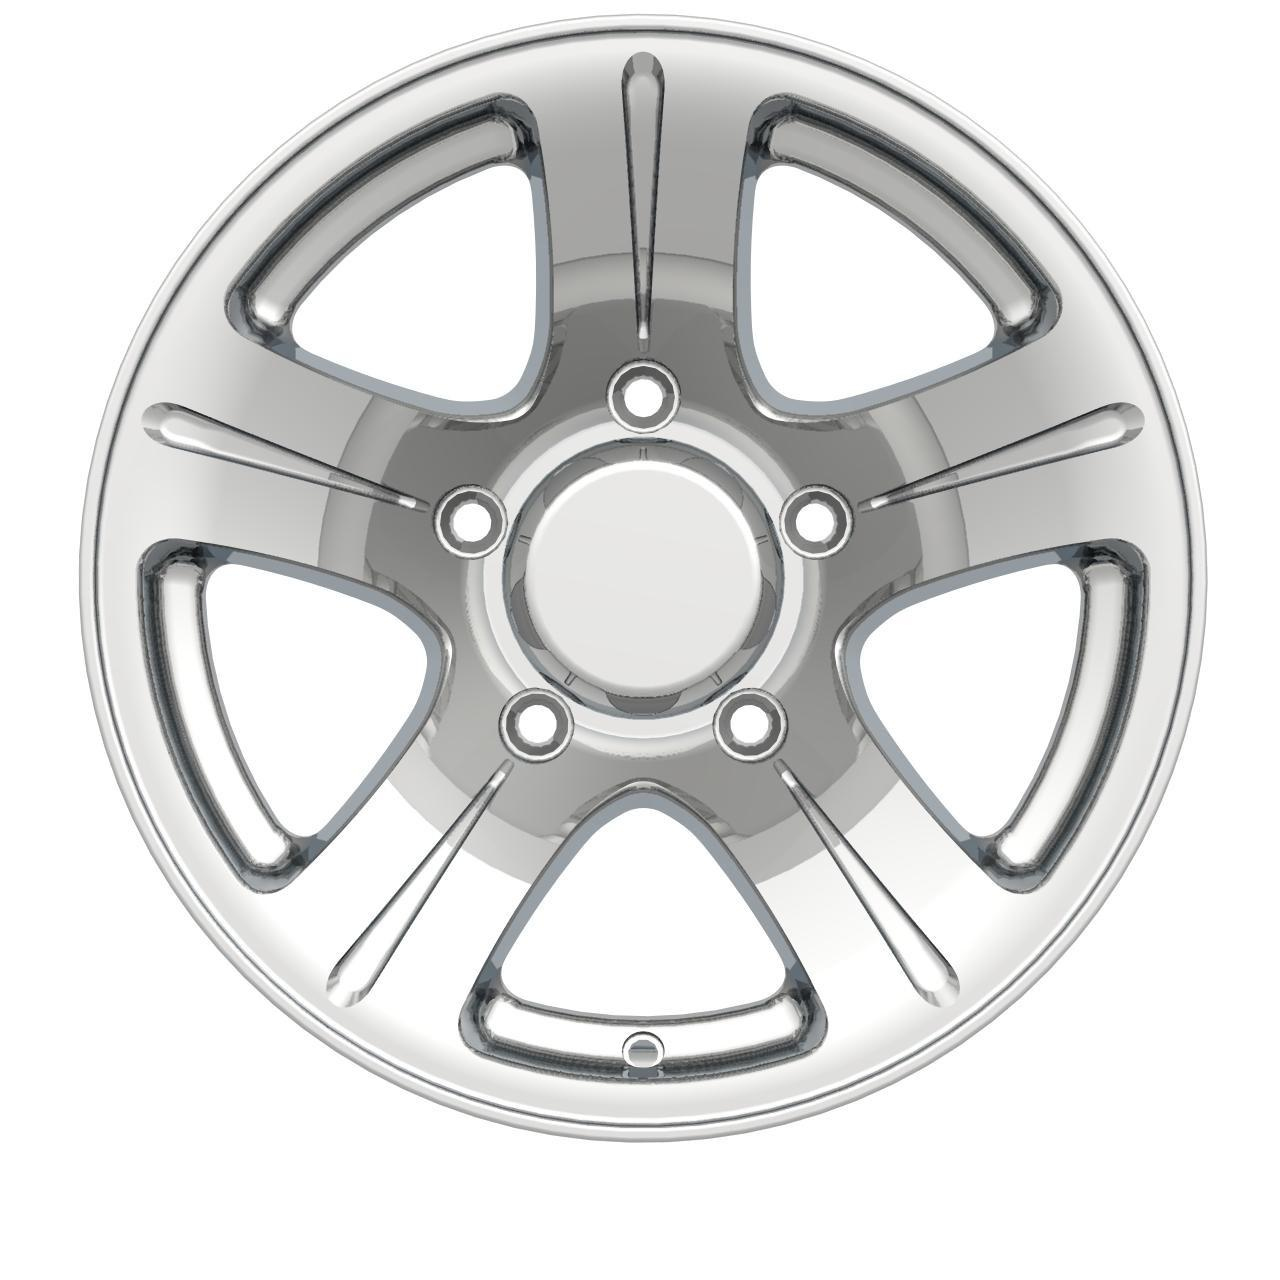 Wholesale 15x8 Vehicle Wheels, 15 Inch Alloy Wheels 5 Hole 111 CB from china suppliers